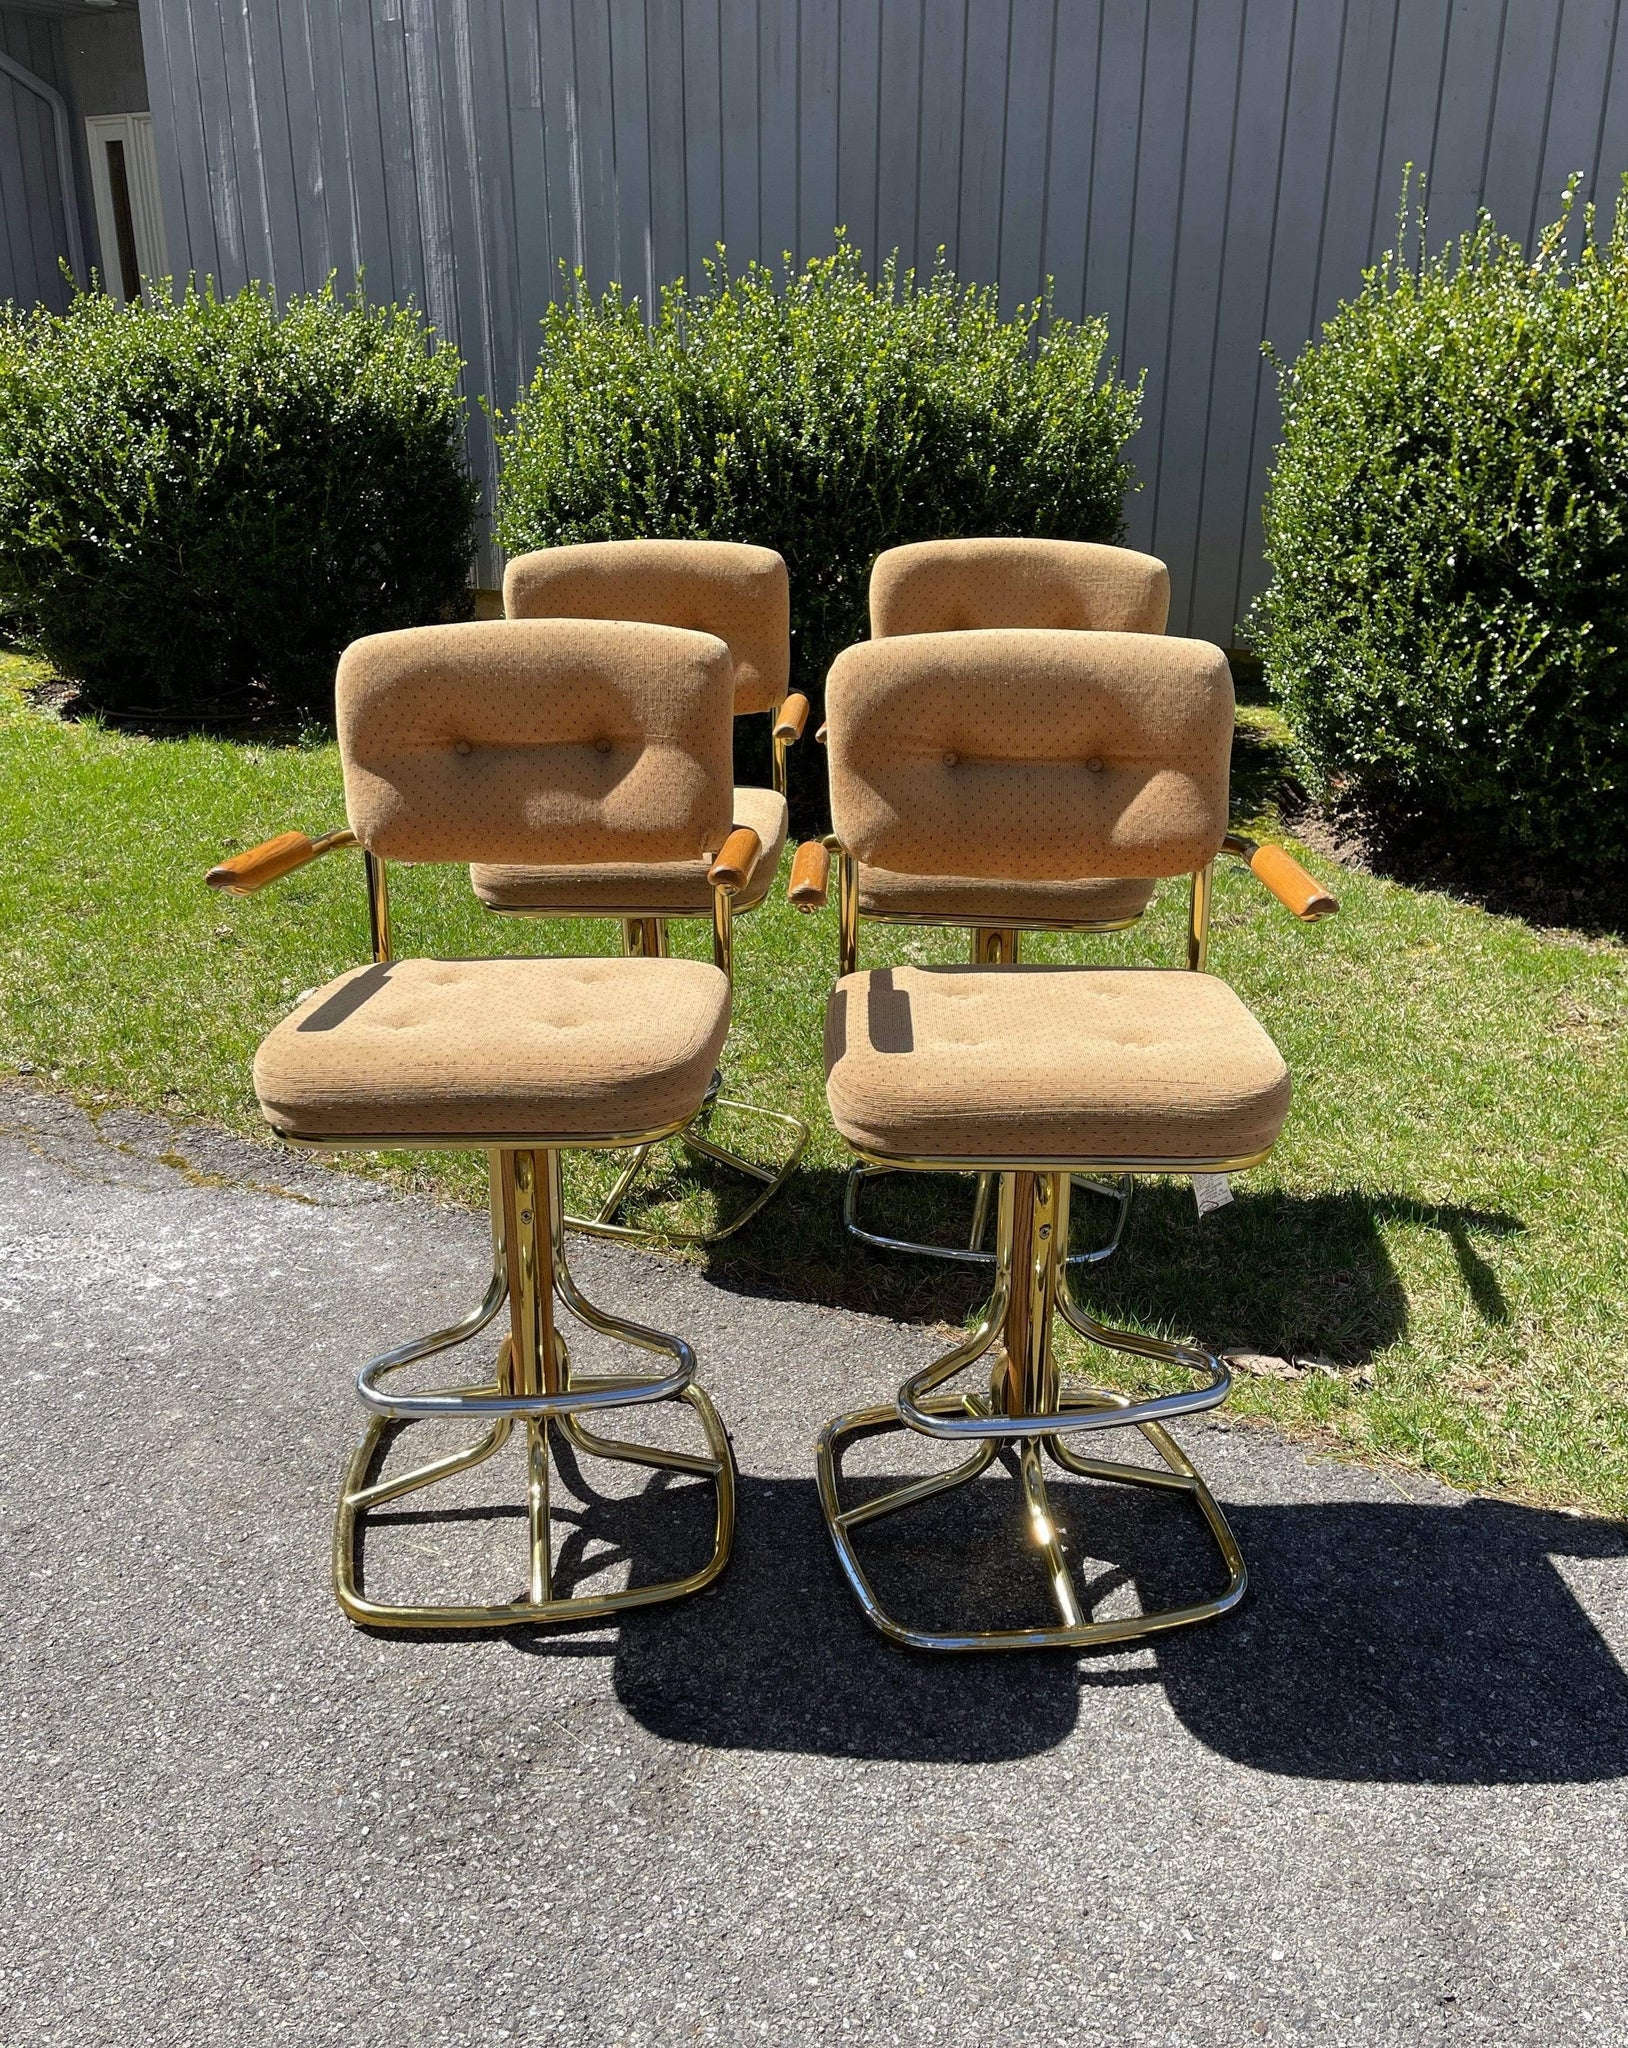 Nice Vintage Things Seating 1970s Swivel Bar Stool In Taupe Velvet With Wooden Armrest By Daystrom Furniture